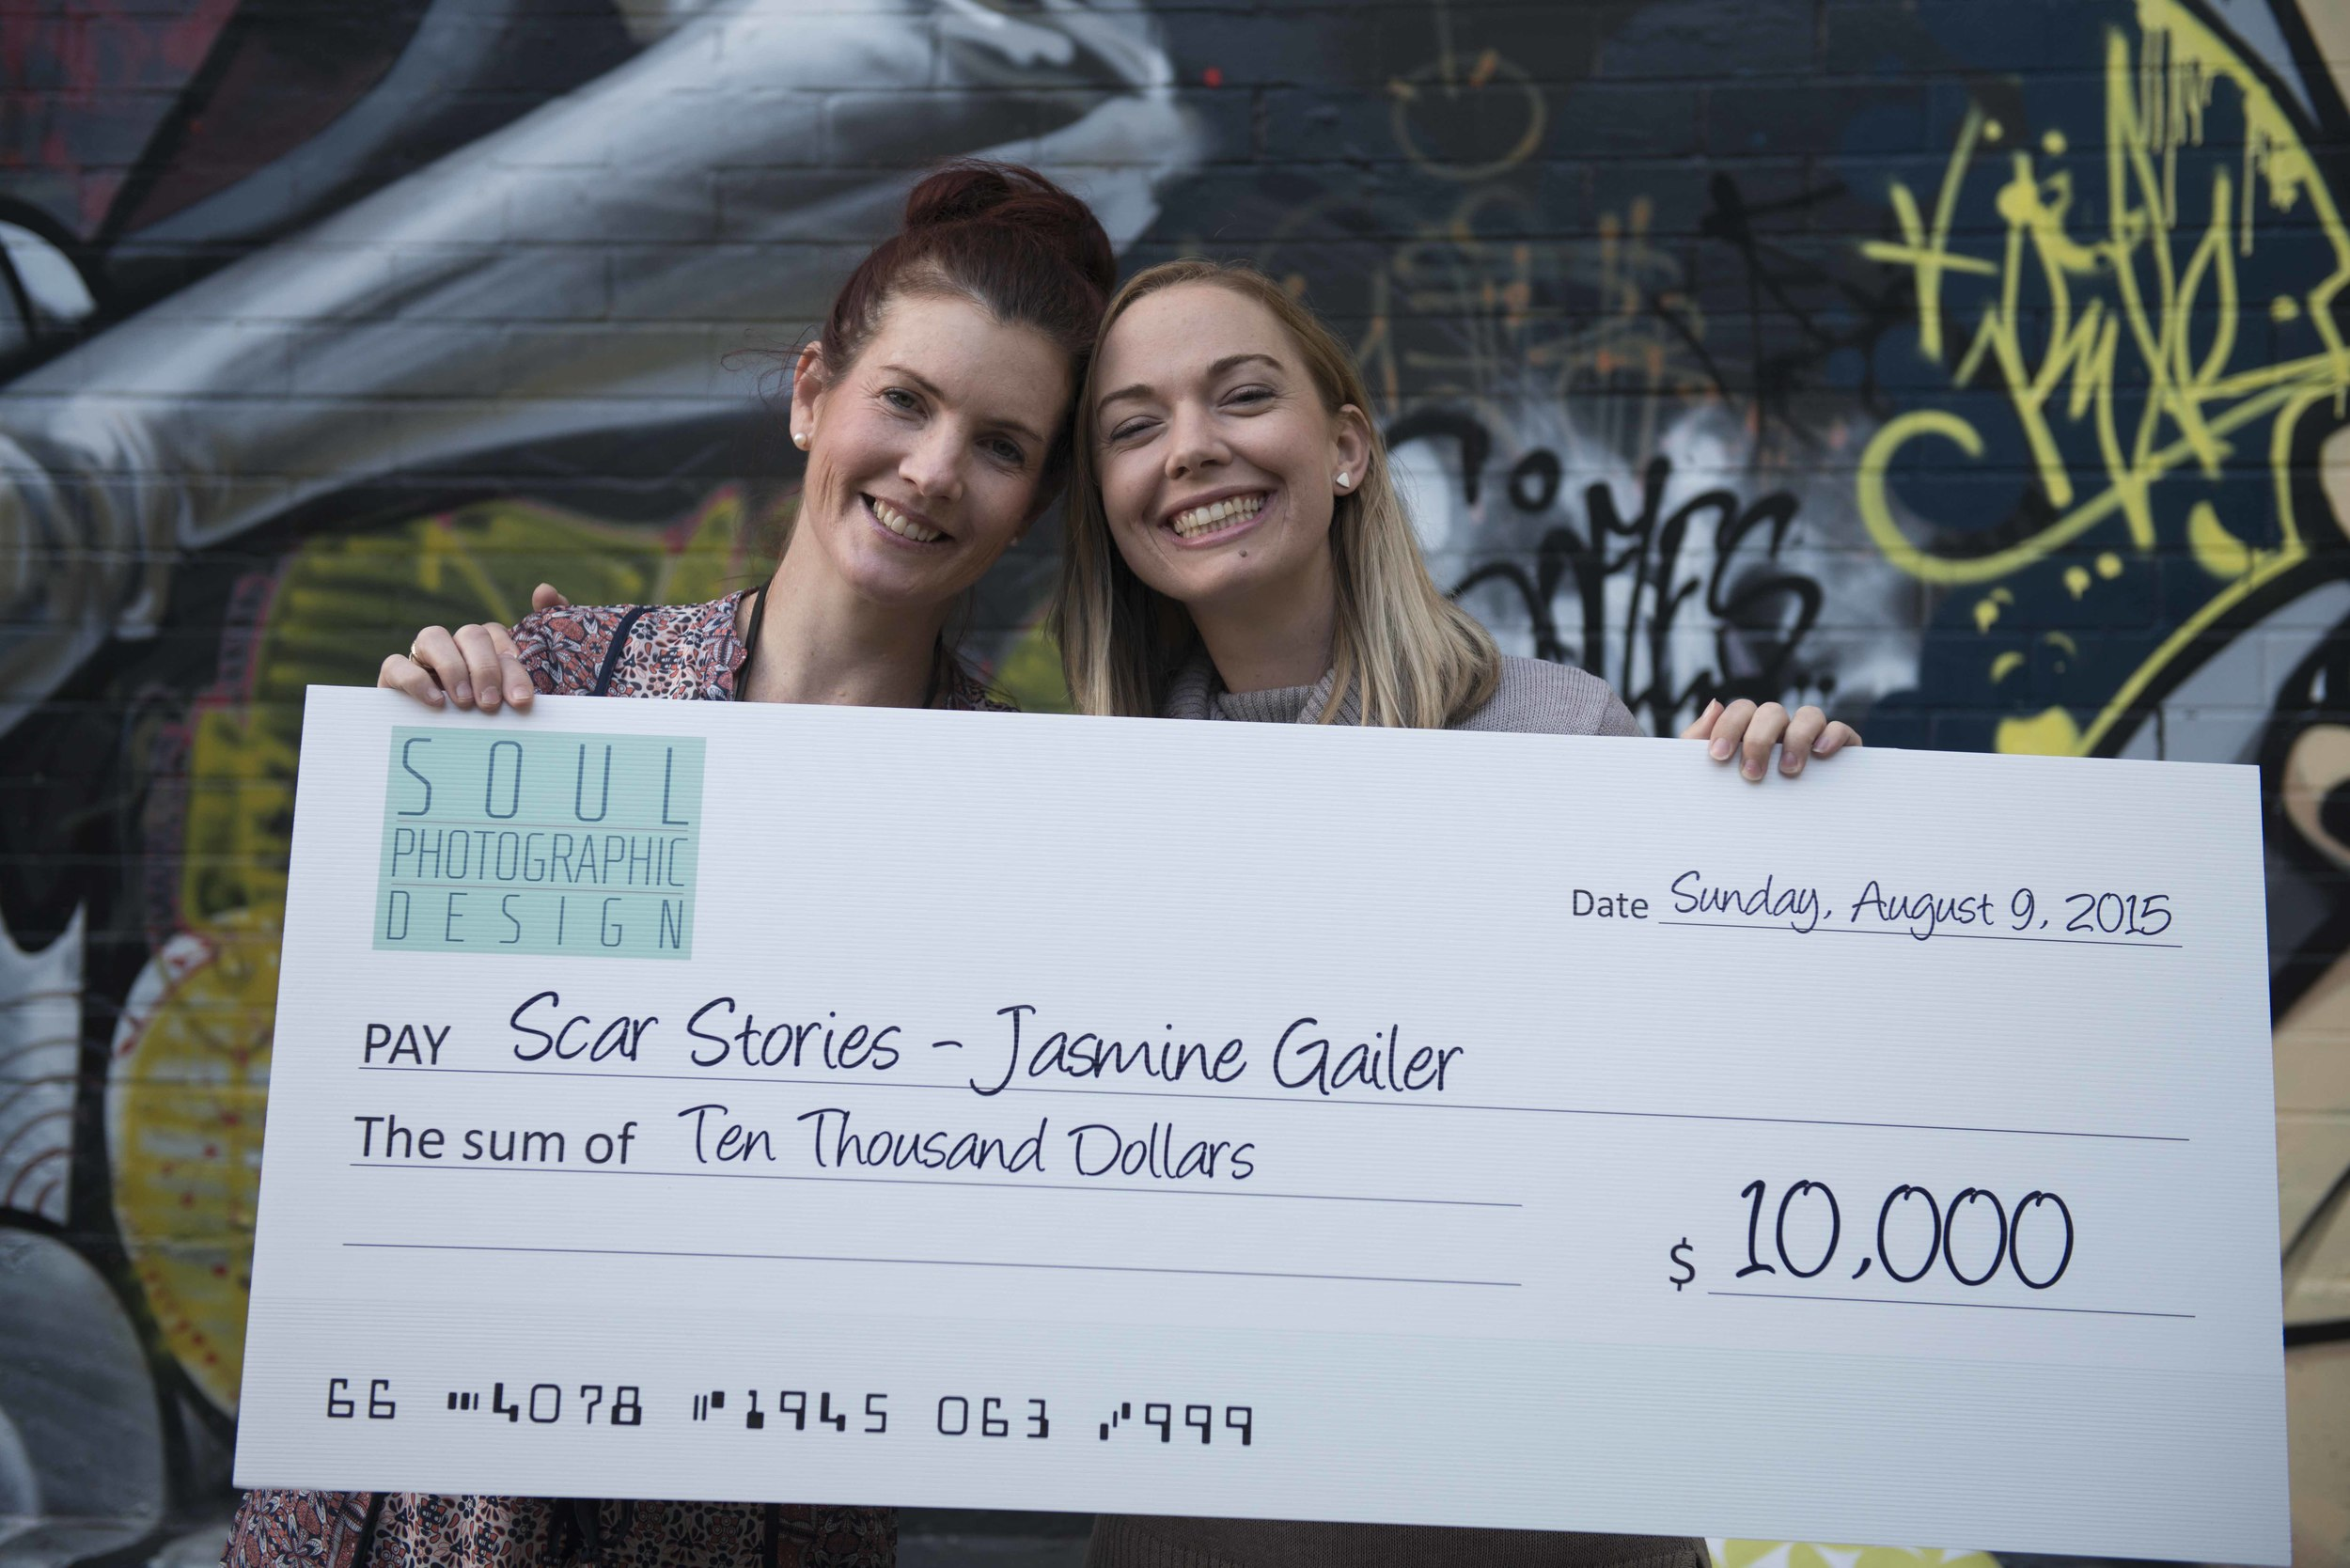 Suzanne McCorkell, winner of Moran Contemporary Photographic Prize 2014 donates $10,000 to Scar Stories August 9, 2015